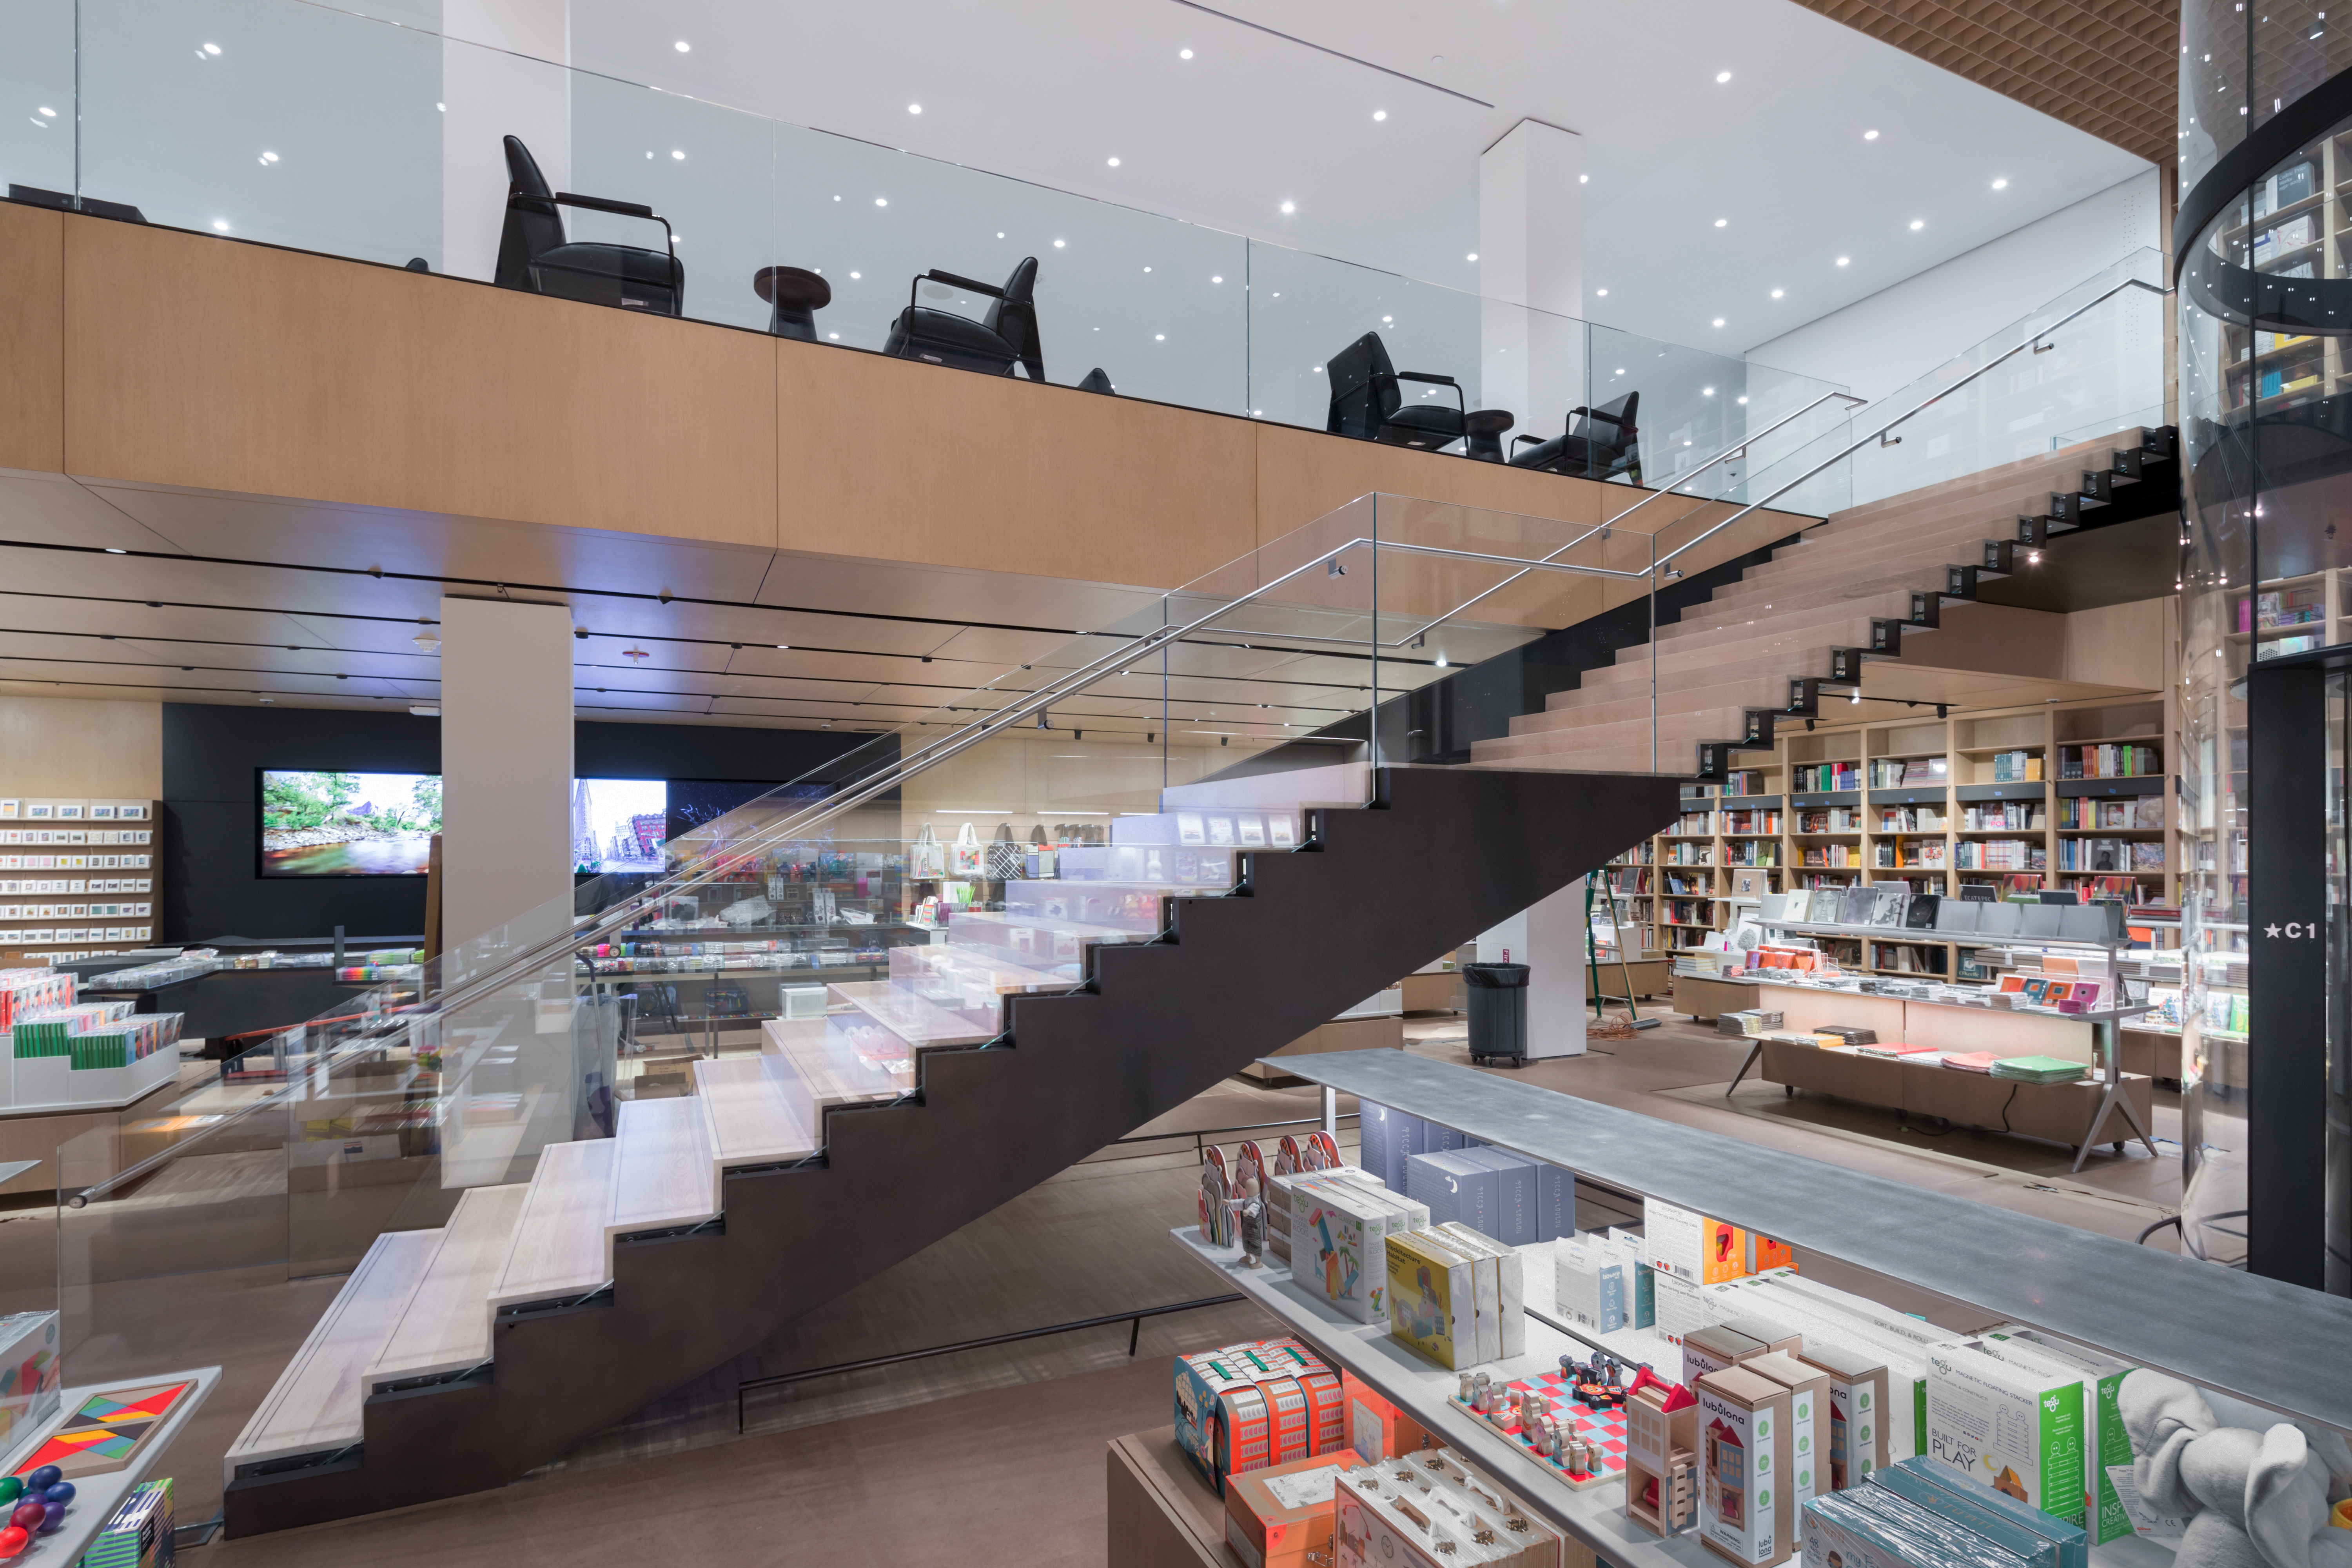 <p>MoMa Fase 2. Interior view of The Museum of Modern Art, Retail Stair Beeld Iwan Baan. Courtesey of MoMa</p>